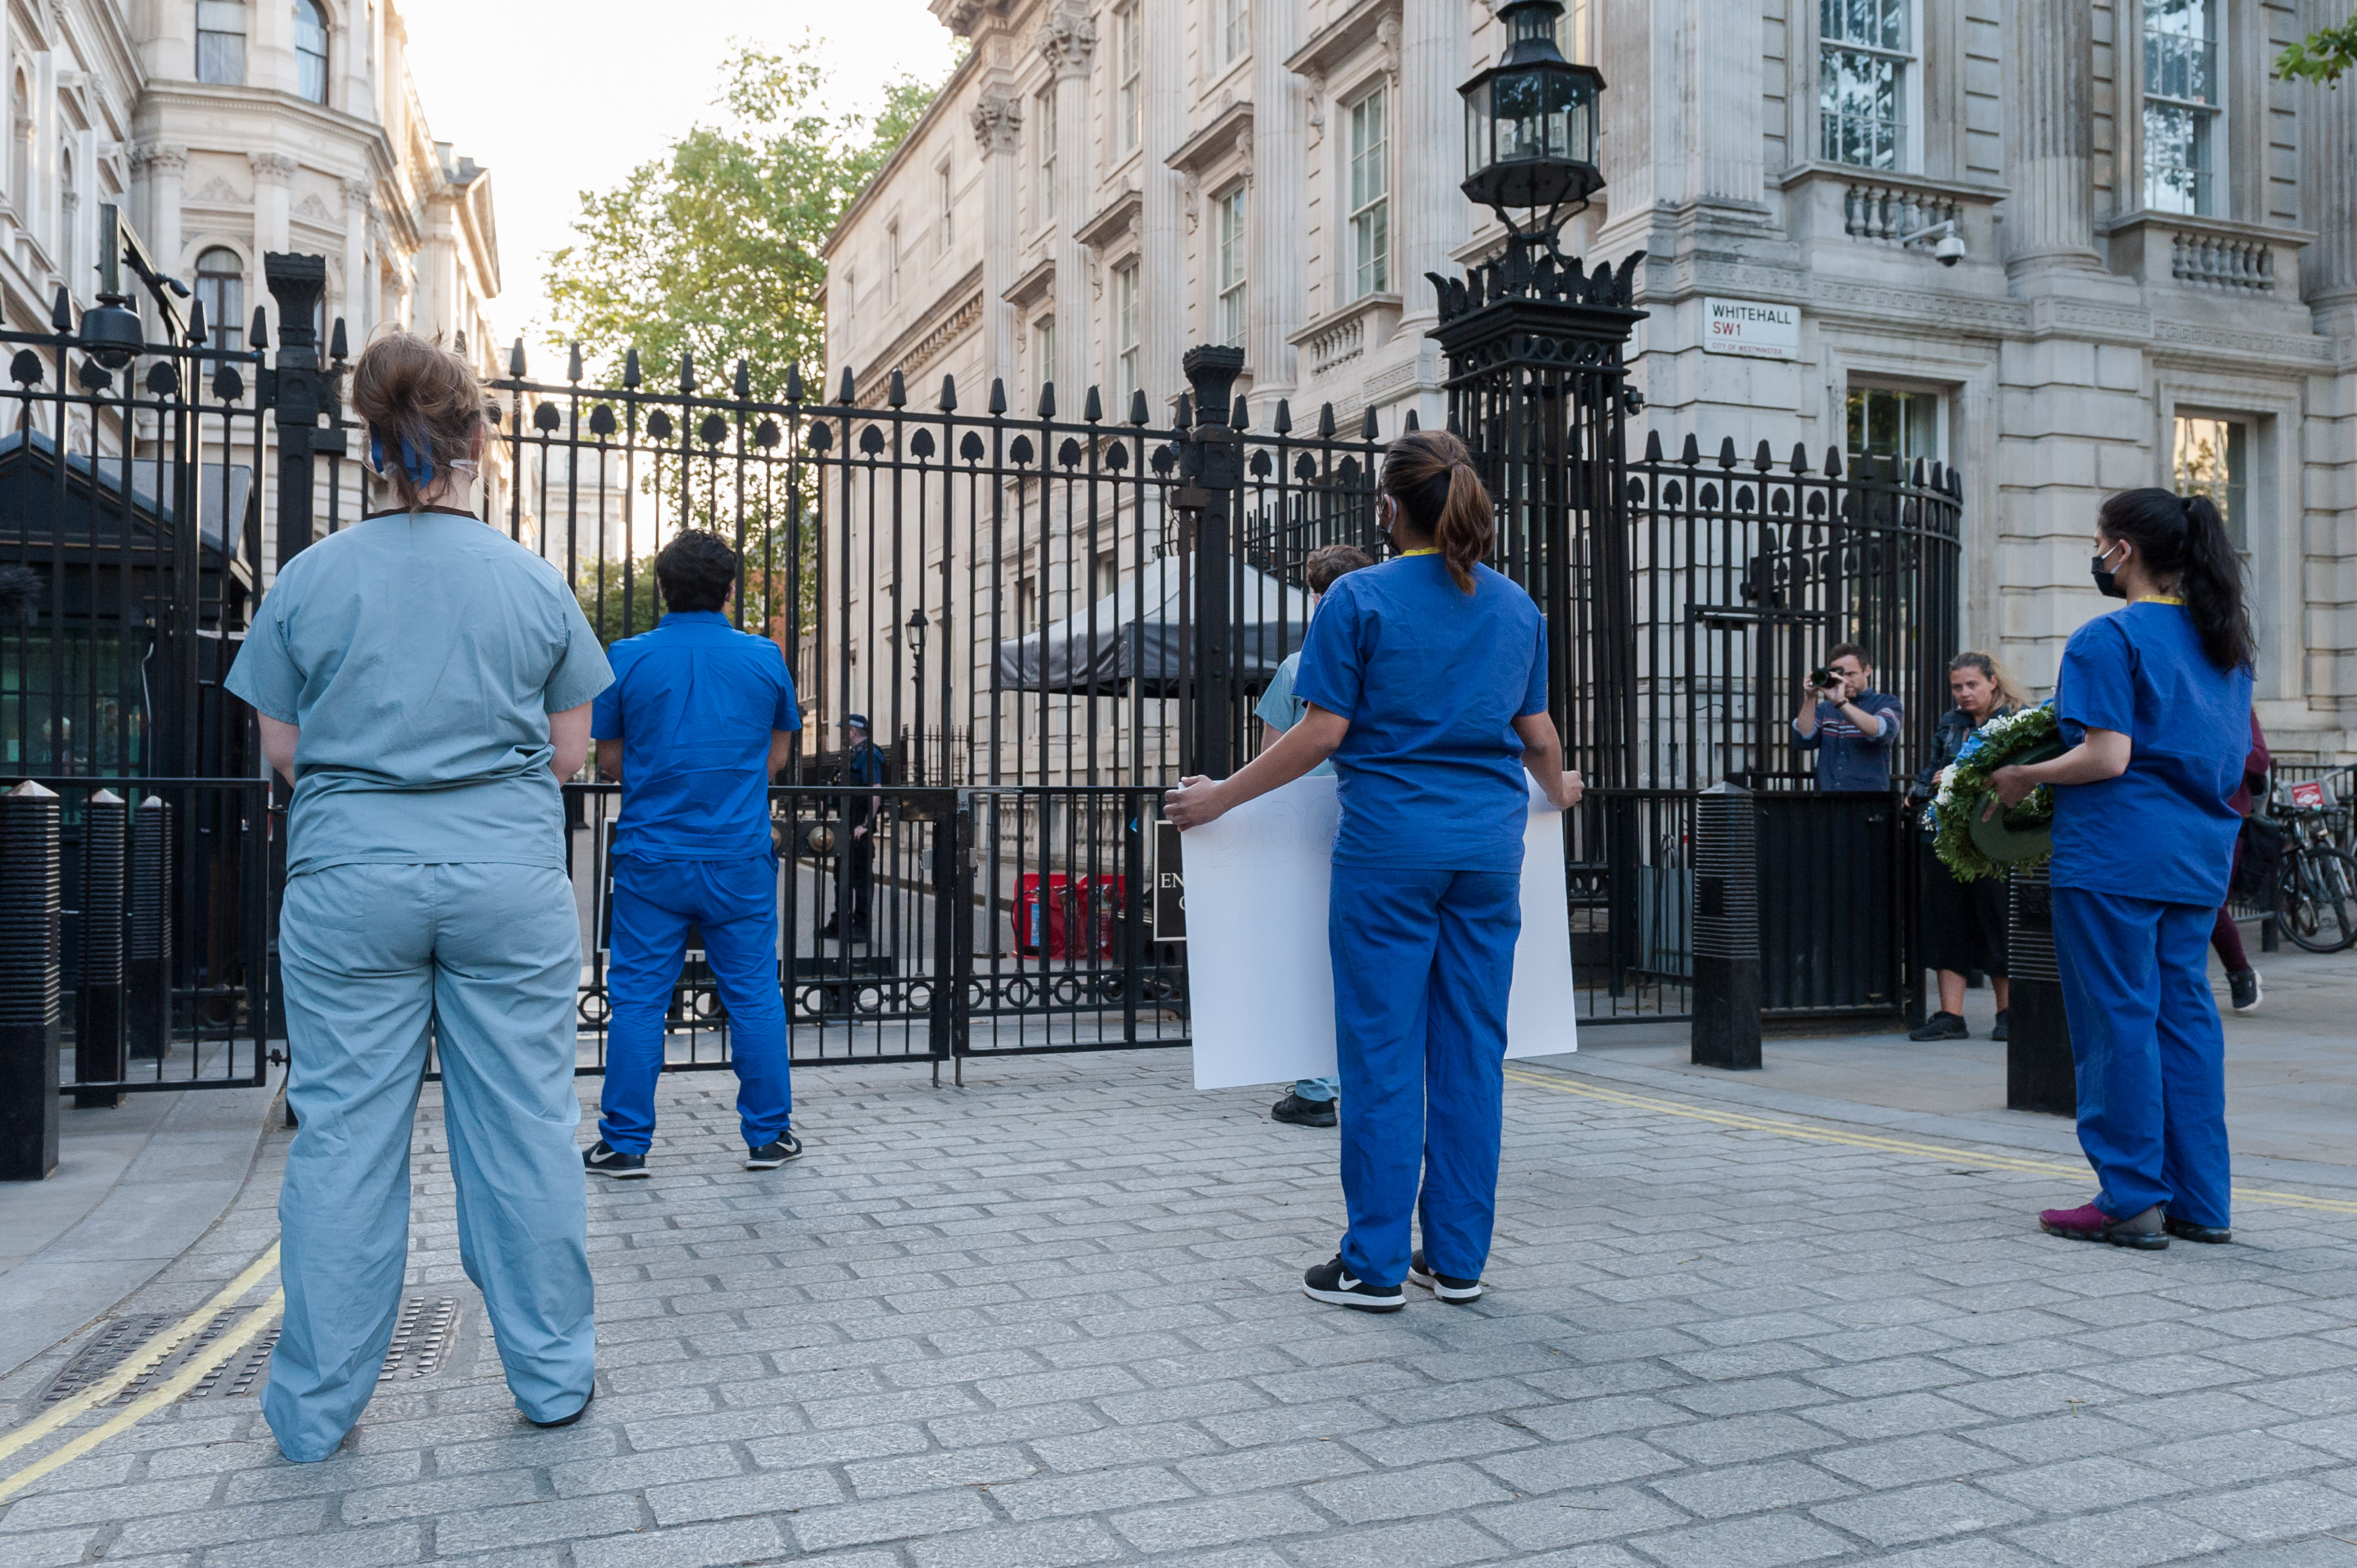 LONDON, UNITED KINGDOM - MAY 28, 2020: NHS staff stage a silent protest outside the gates of Downing Street during the weekly 'Clap for our Carers' applause for the NHS and key workers on the front line of the coronavirus (Covid-19) pandemic on 28 May, 2020 in London, England.- PHOTOGRAPH BY Wiktor Szymanowicz / Barcroft Studios / Future Publishing (Photo credit should read Wiktor Szymanowicz/Barcroft Media via Getty Images)